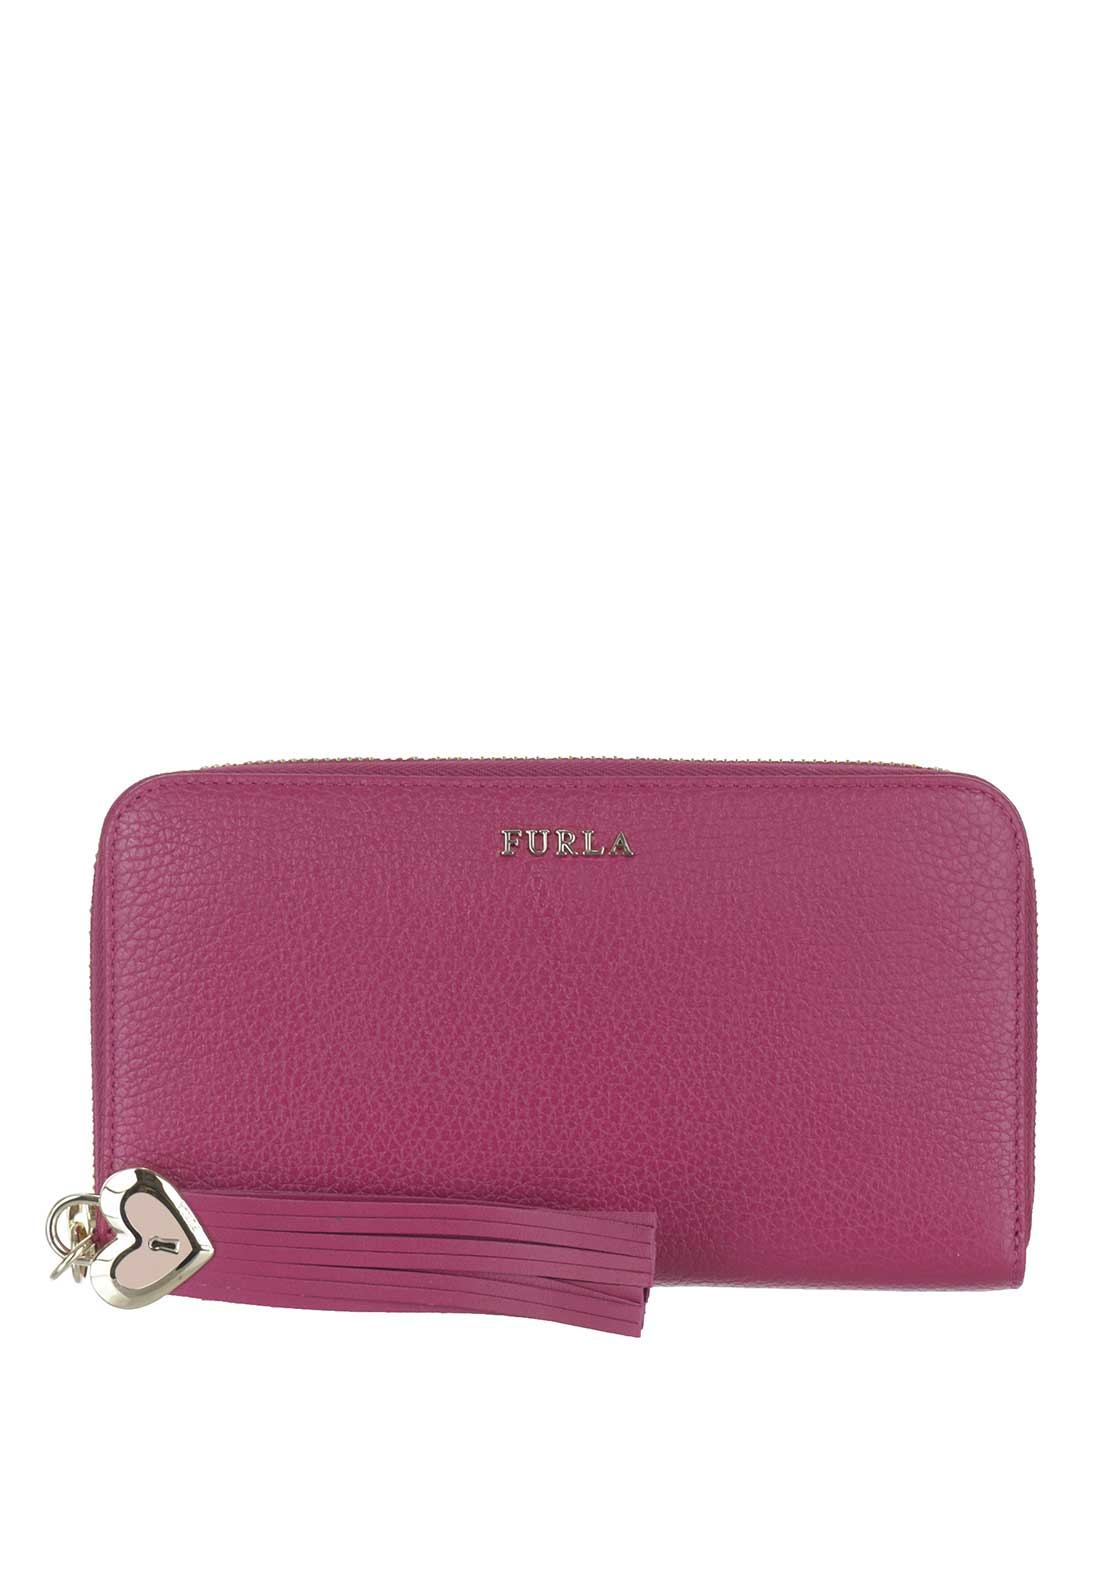 Furla Cuore Leather Zip Around Purse, Pink